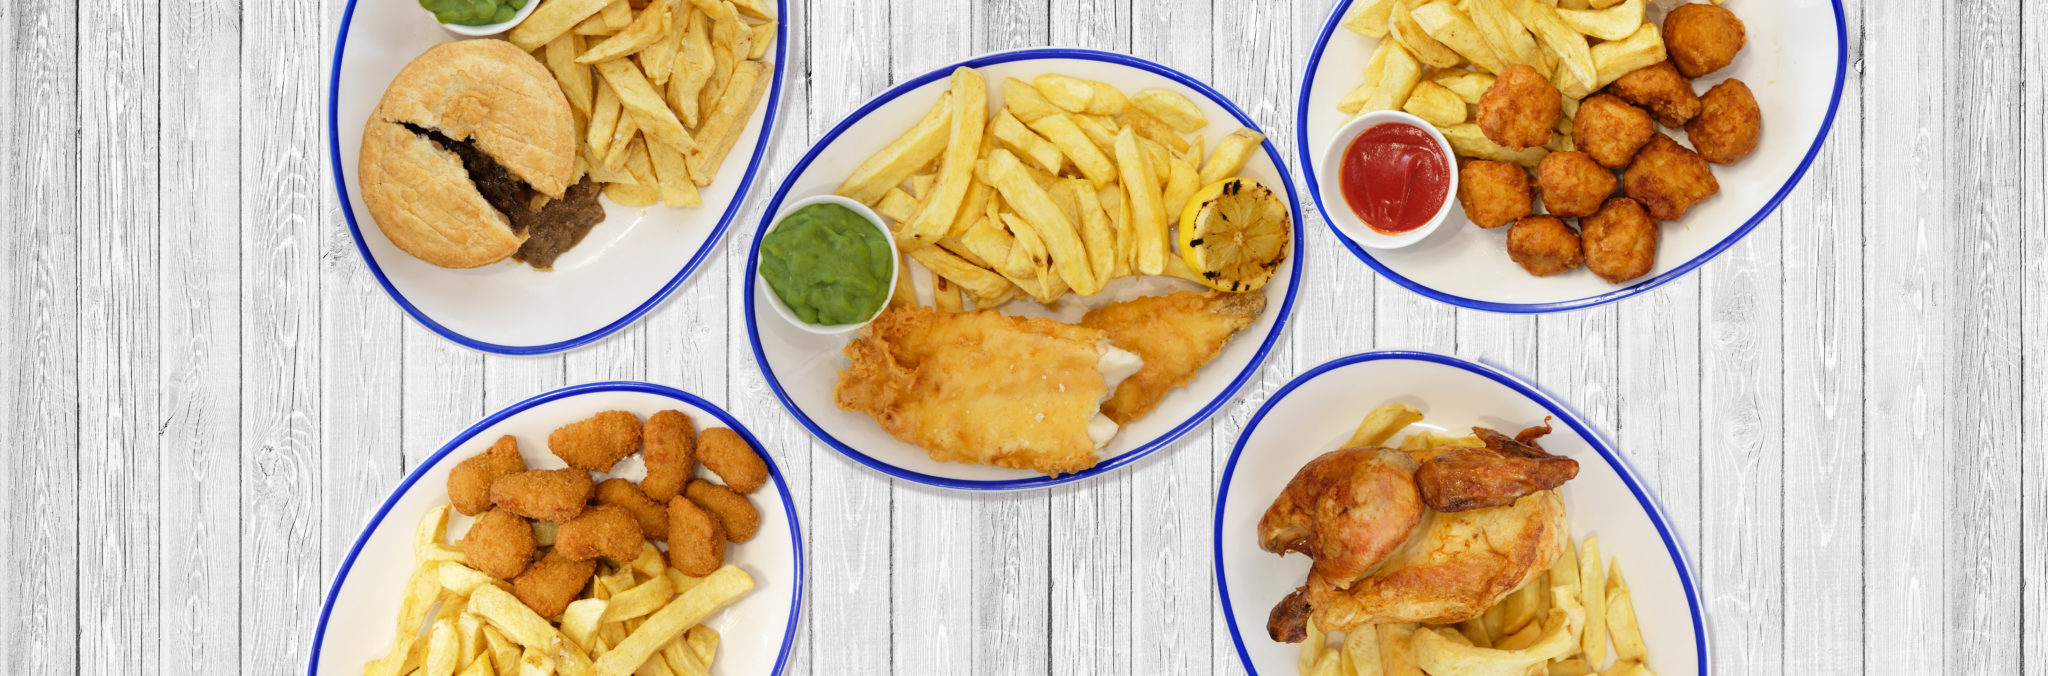 Home of Takeaway Fish & Chips and Delivery